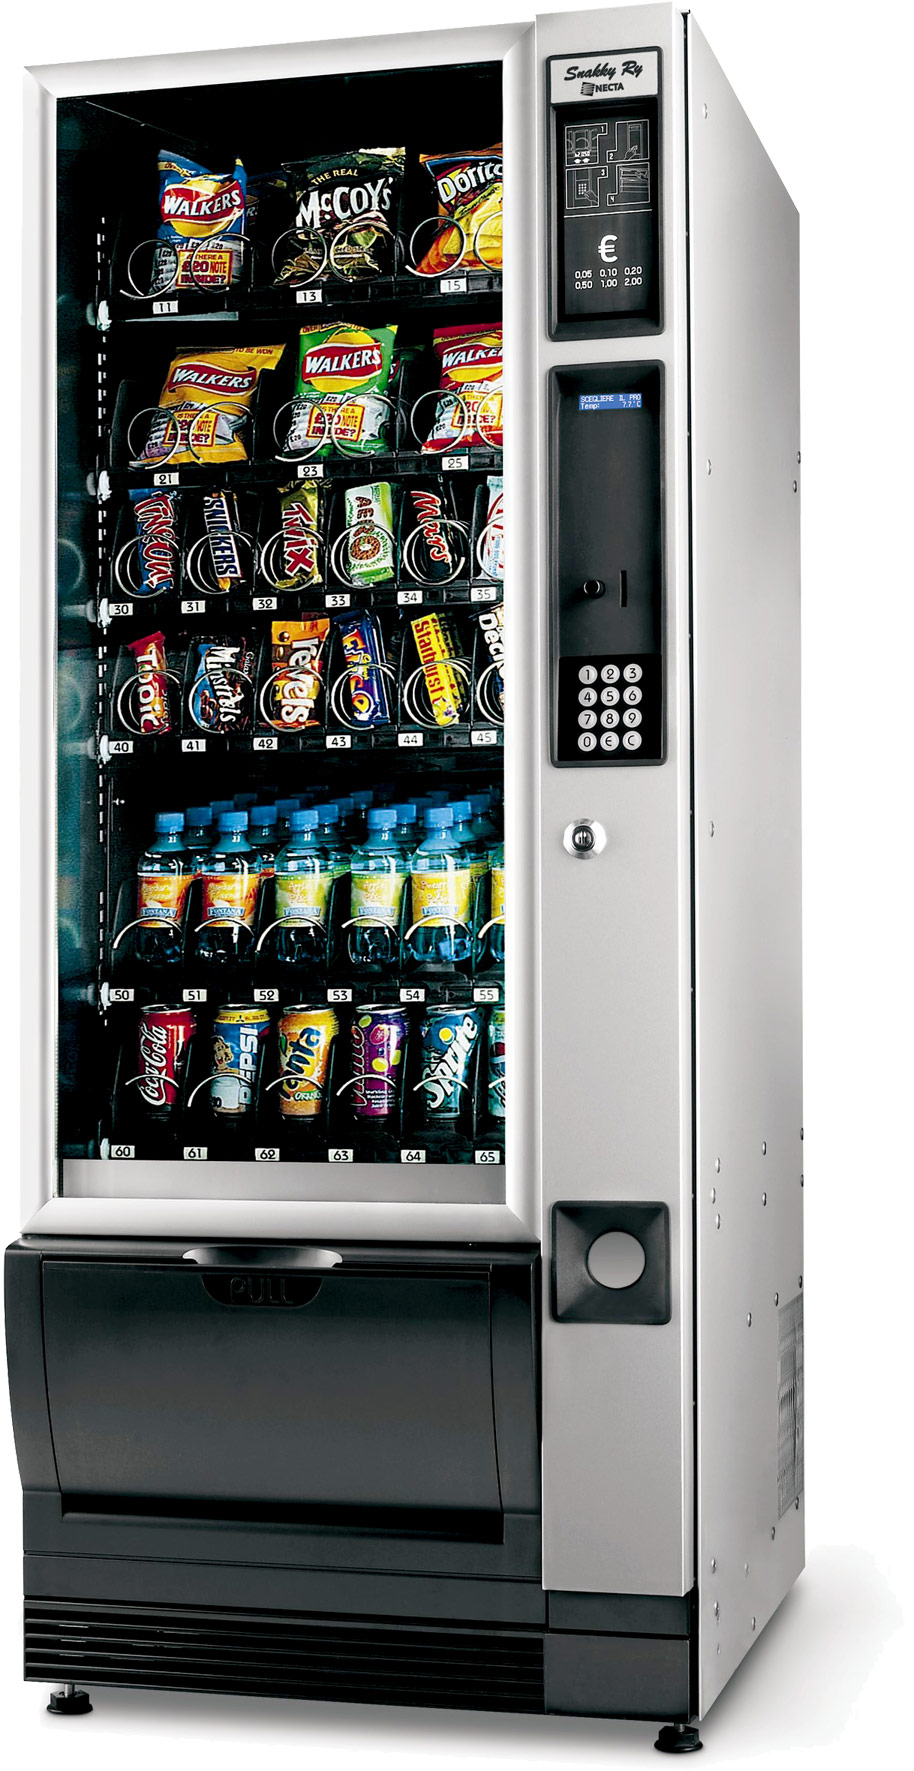 Snakky Combi Snacks Drinks Vending Machine Refurbished